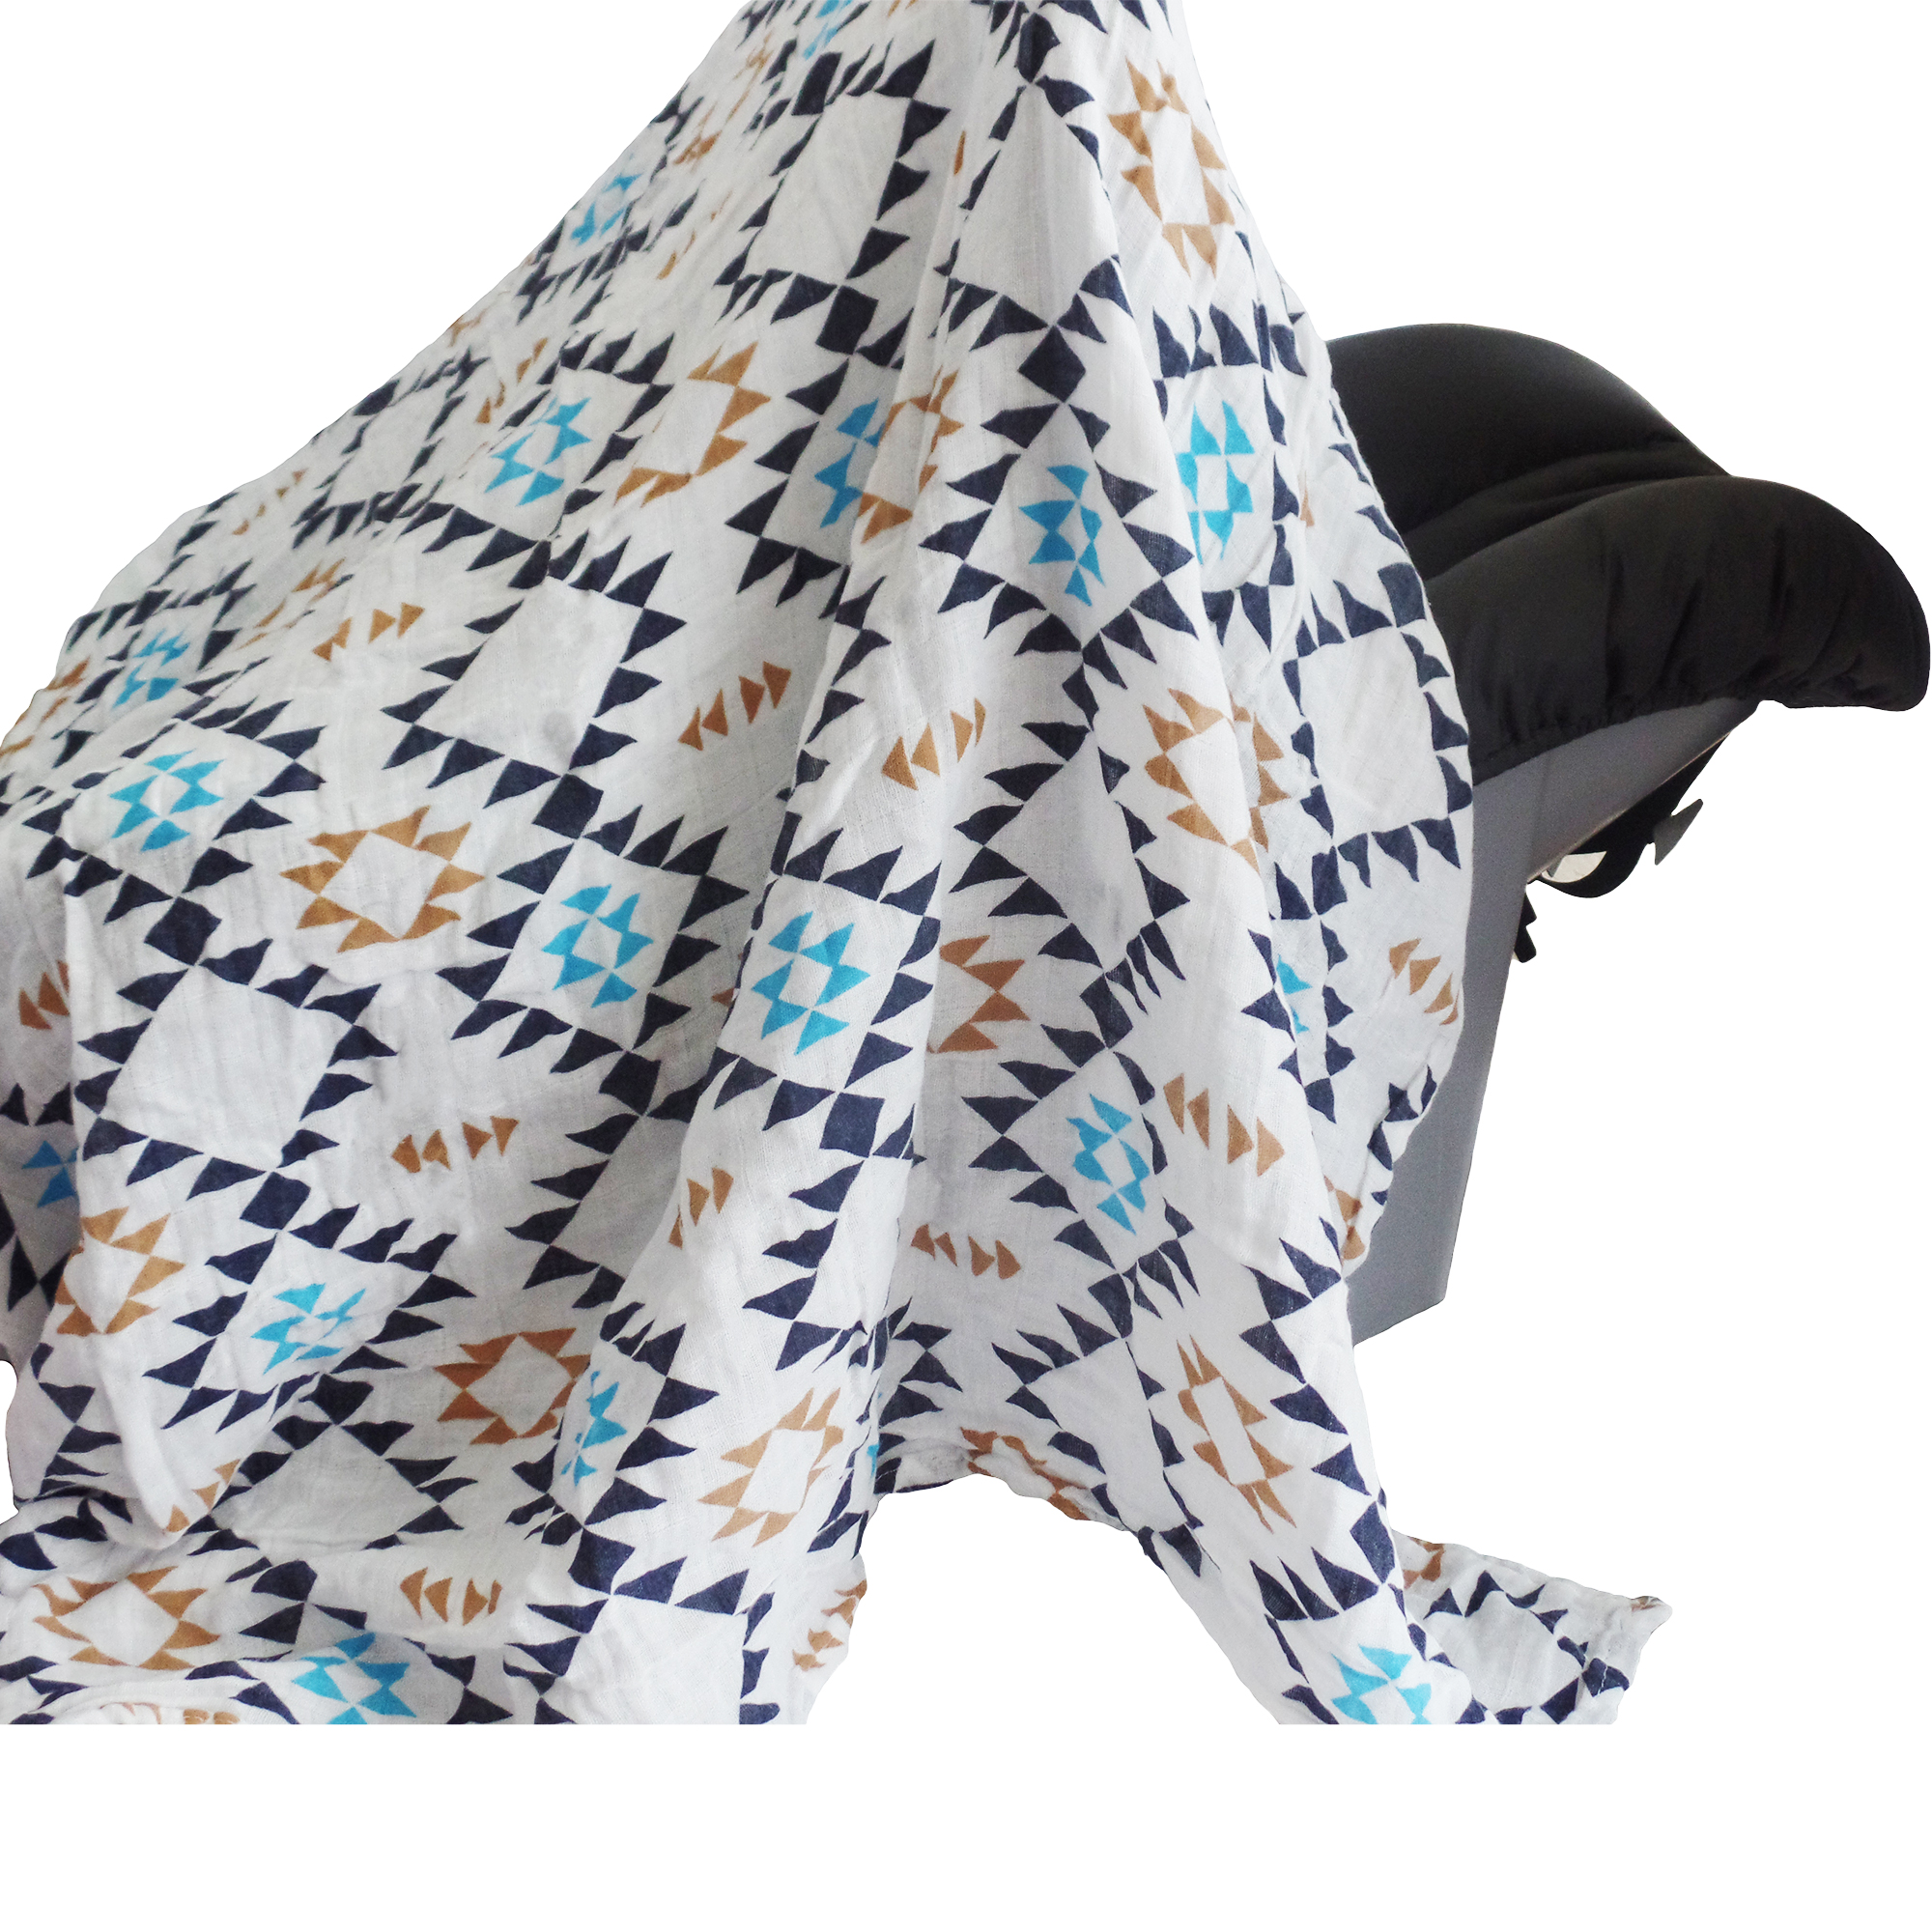 Soft and Versatile 100% Muslin Cotton Swaddle Pre-Washed Blankets, Large, 47 x 47, Geometric Patterns